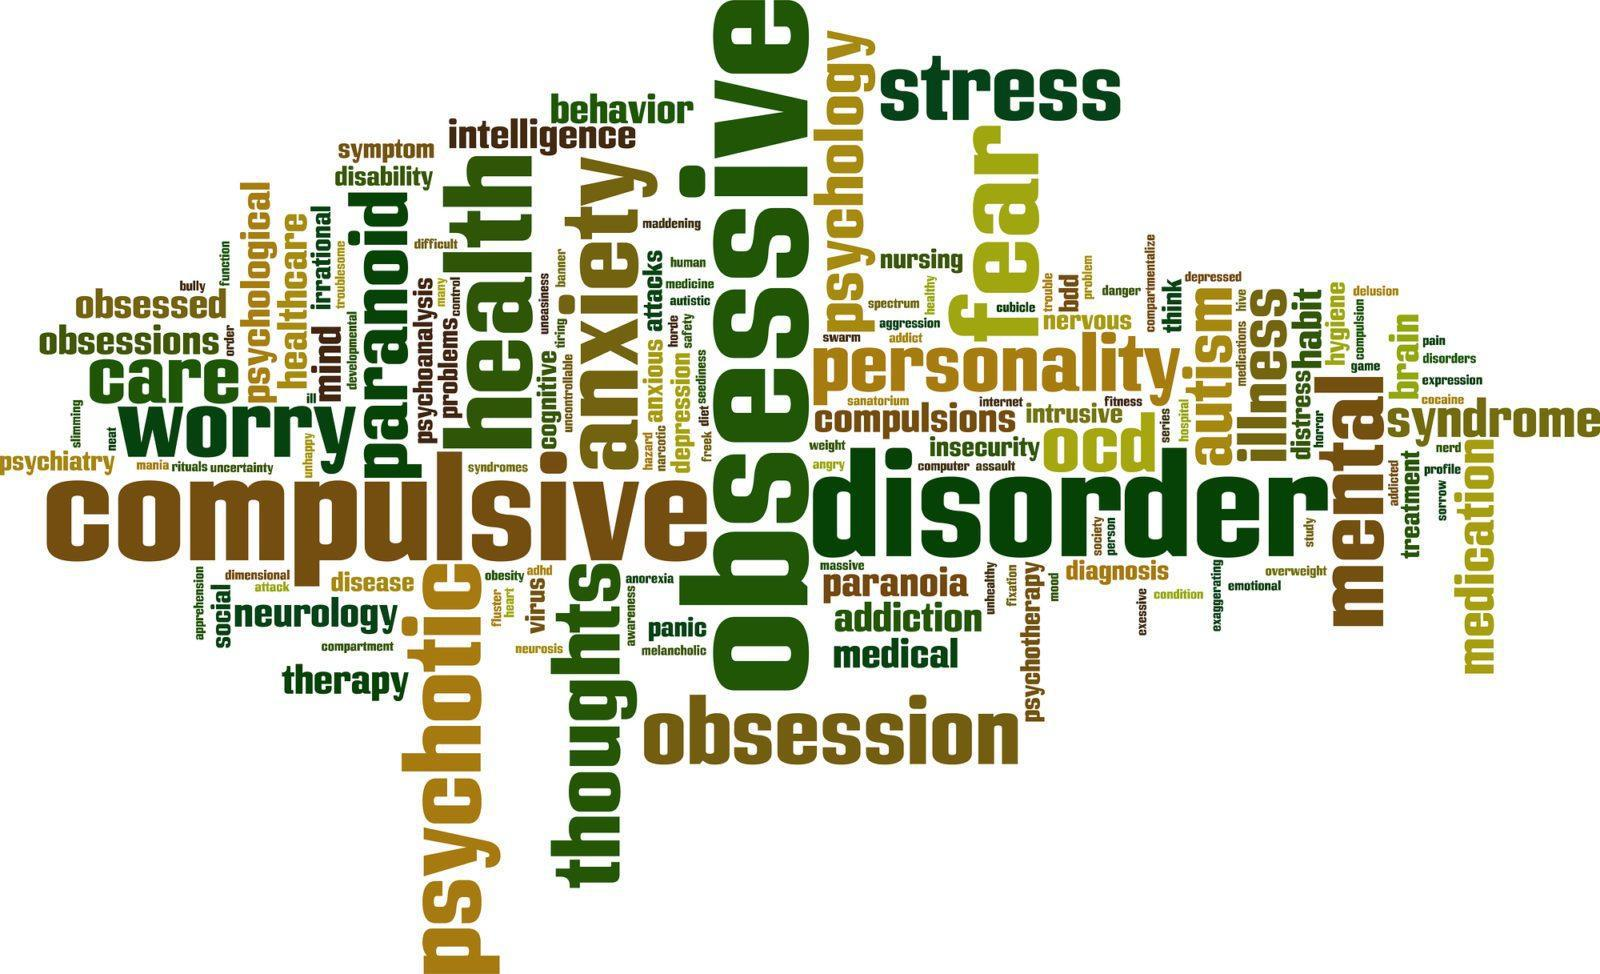 obsessive disorder compulsive young ocd obsessions thoughts adults word cloud anxiety obsession research compulsions unwanted papers personality repetitive tag provoking